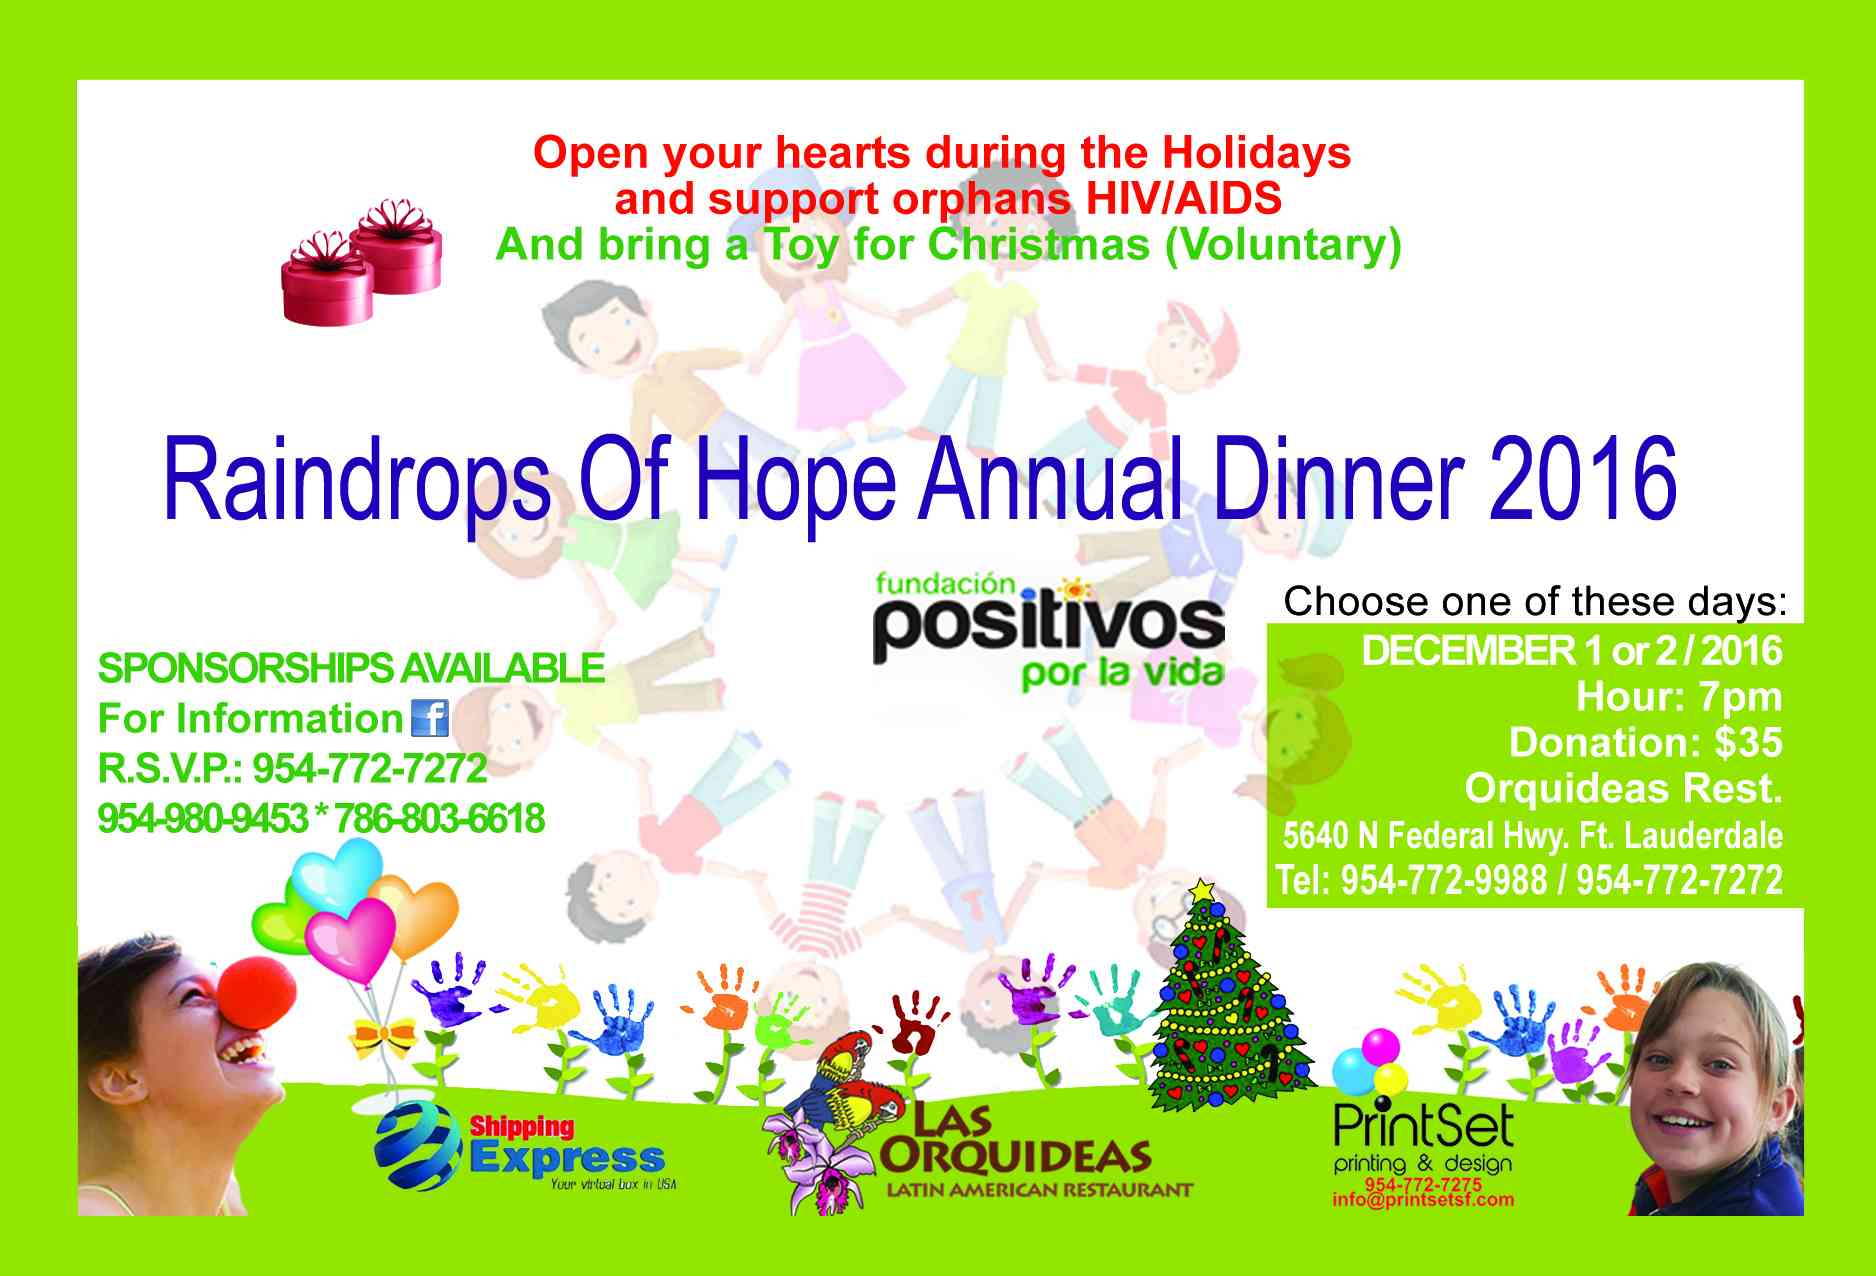 161201 Raindrops of Hope Annual Dinner 2016